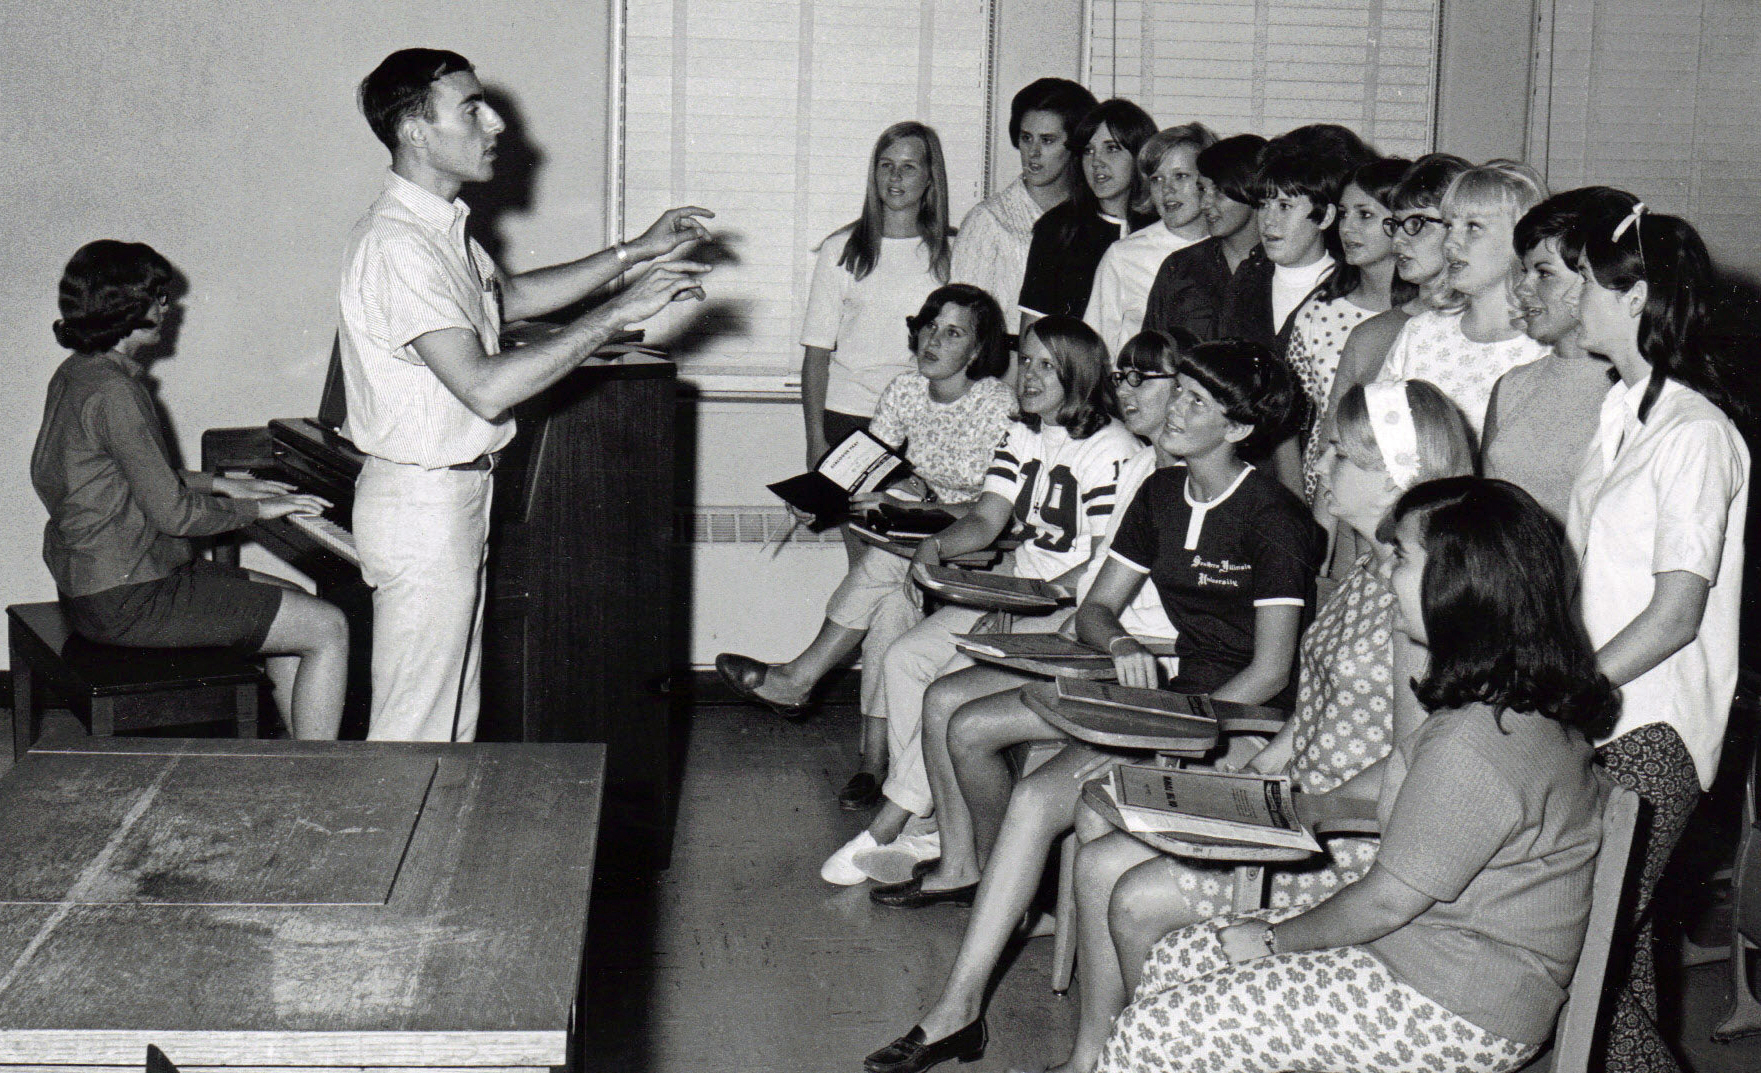 Denis with Avoca chorus - 1964